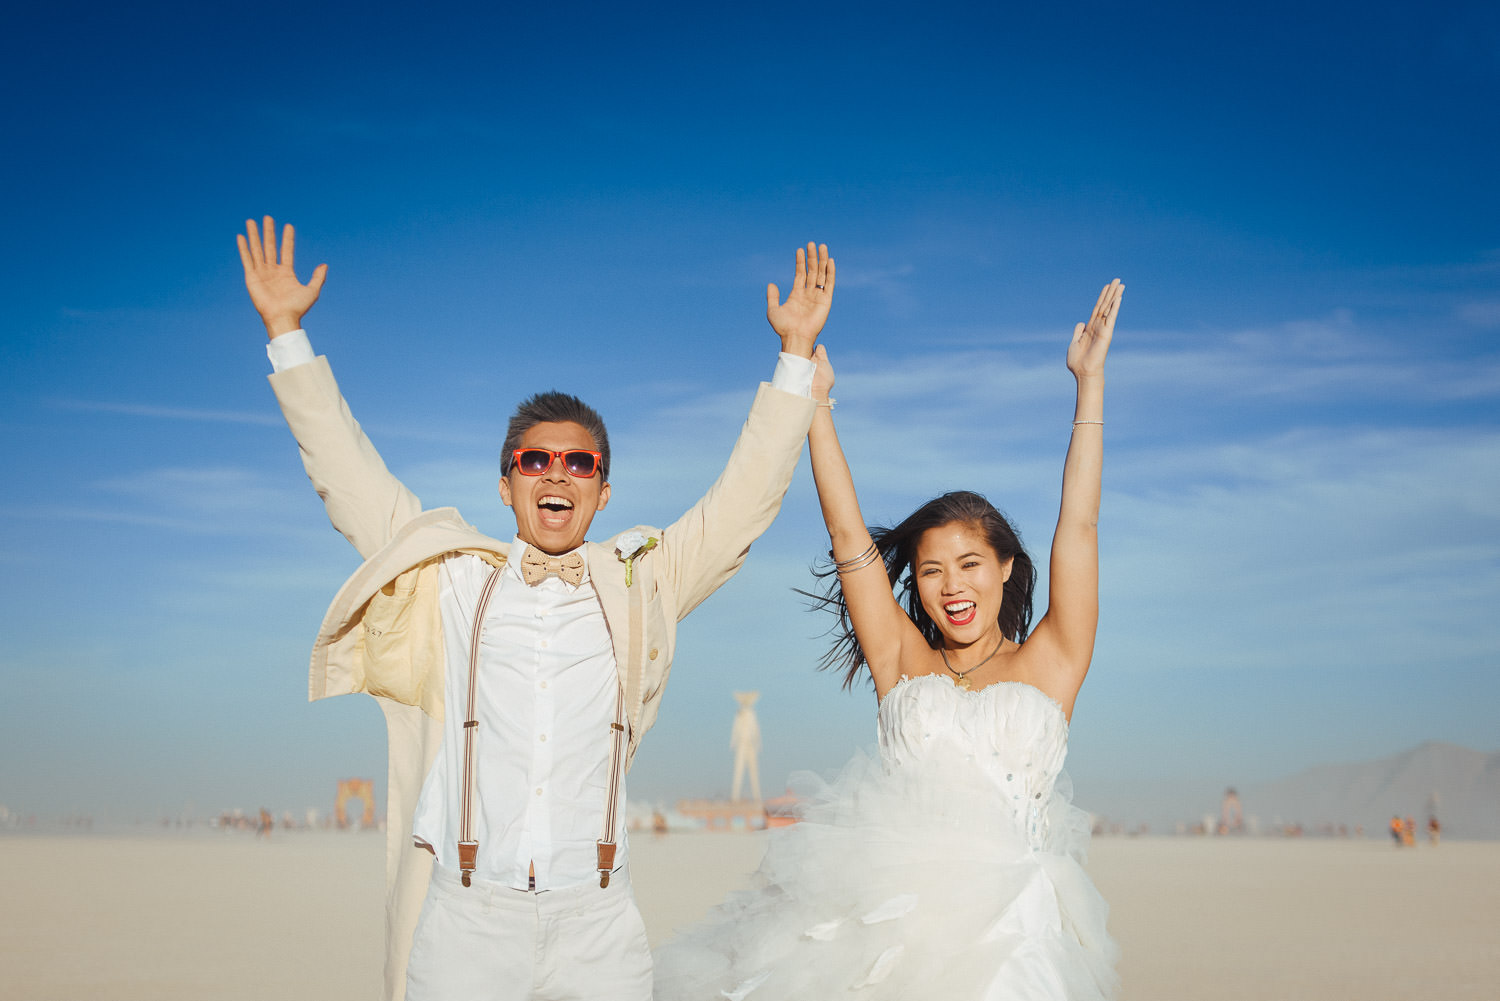 12 Simple and effective Tips for Planning an Amazing Burning Man Wedding